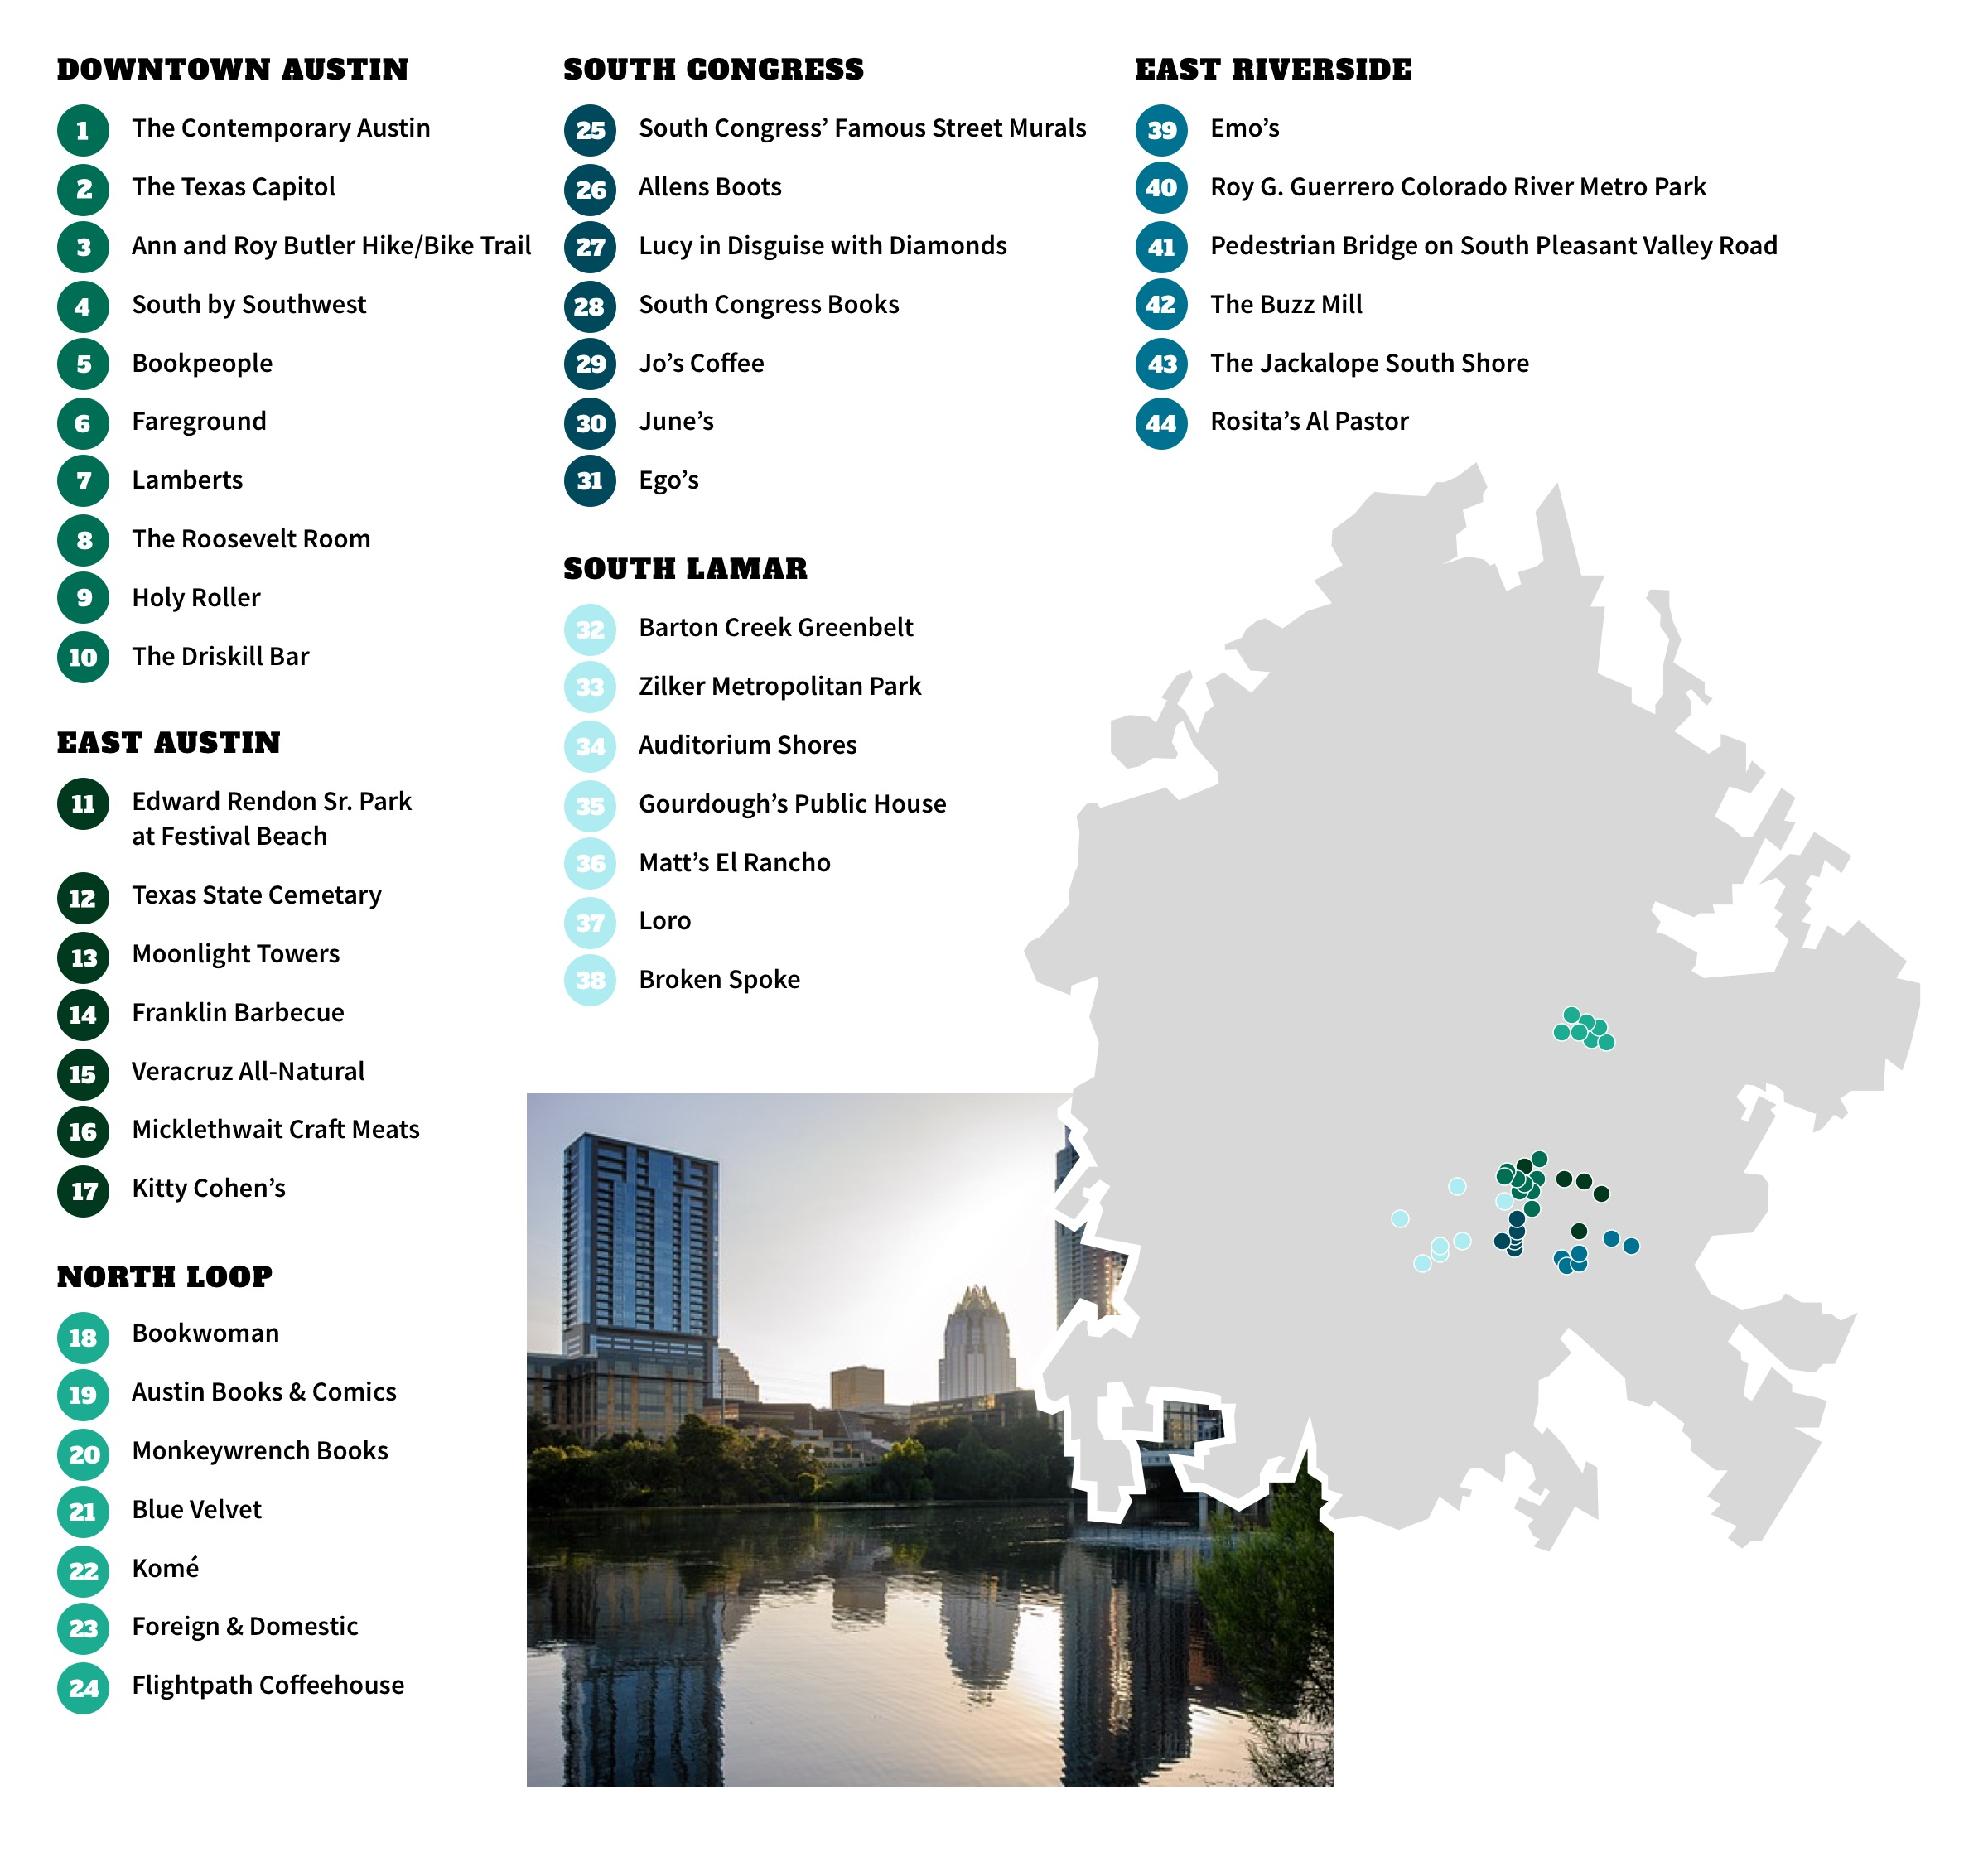 List of the Austin locations highlighted in the article